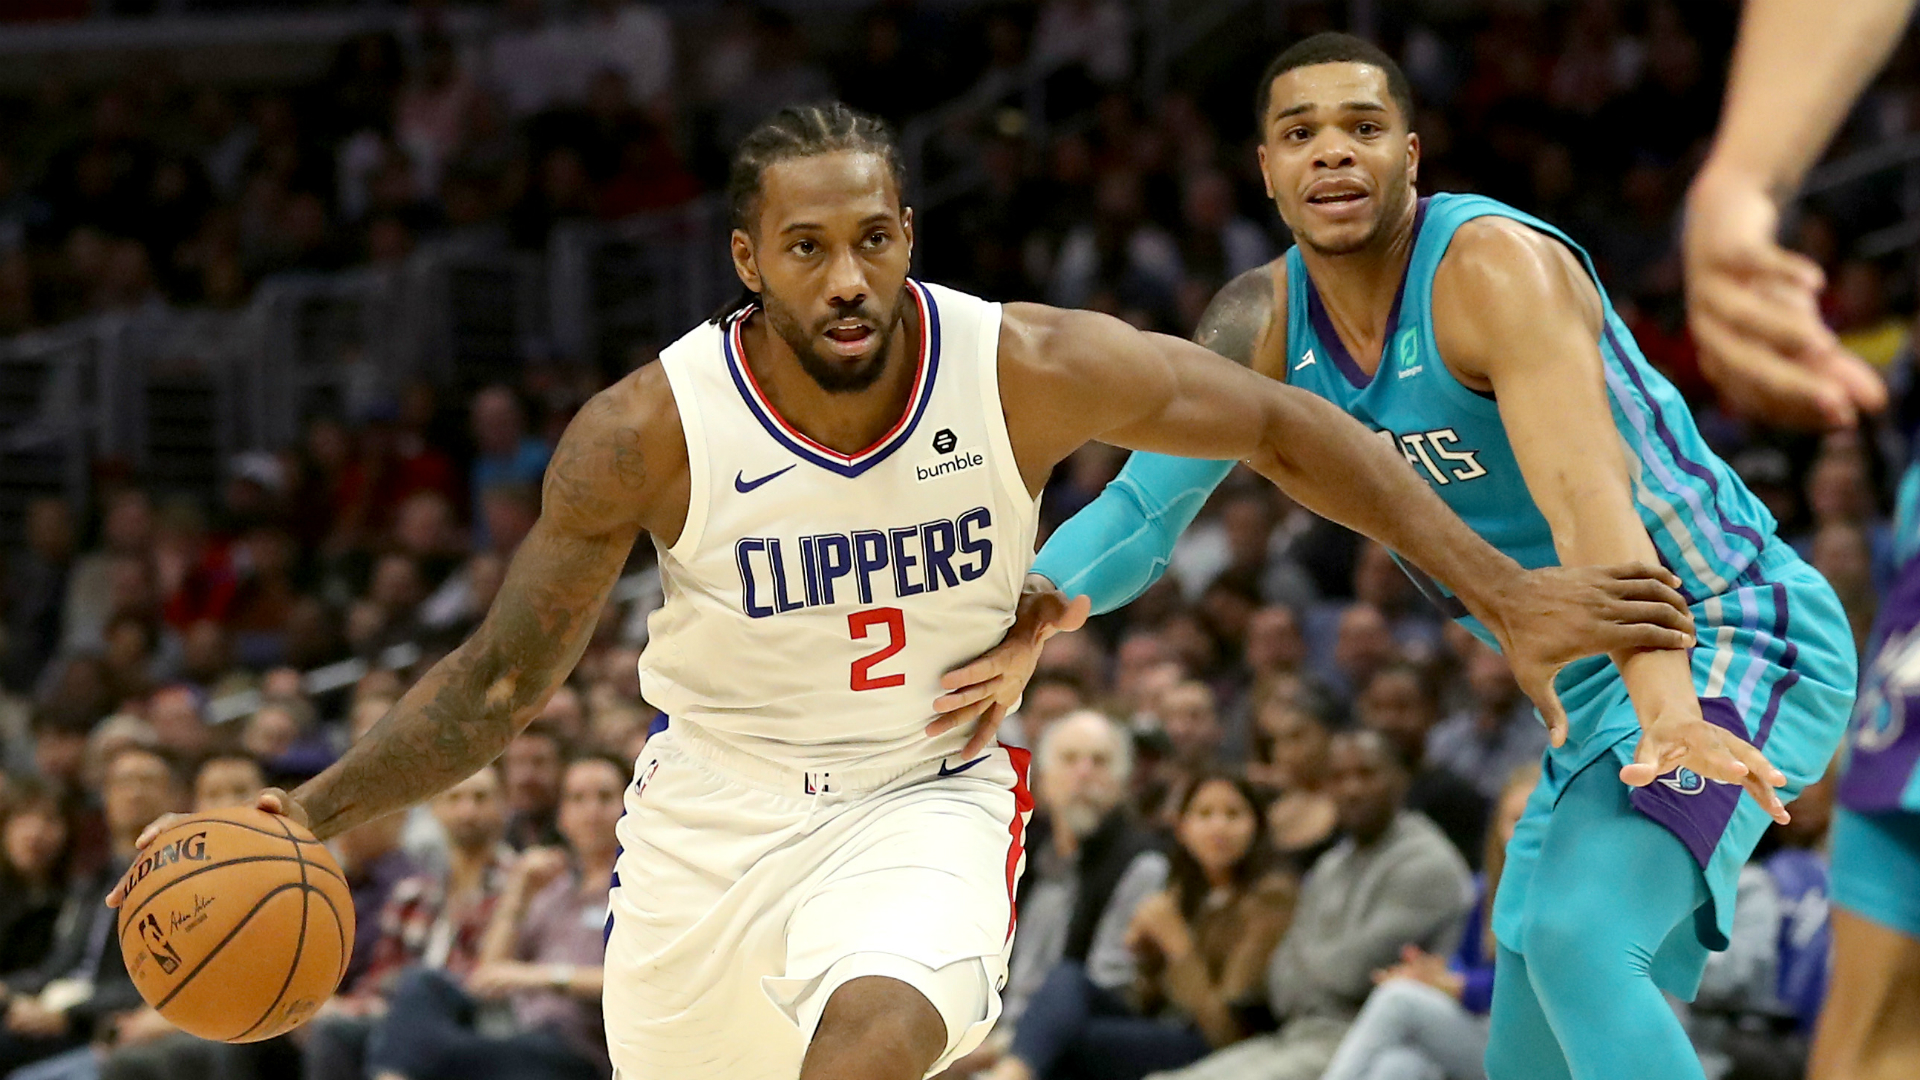 Hornets @ Clippers